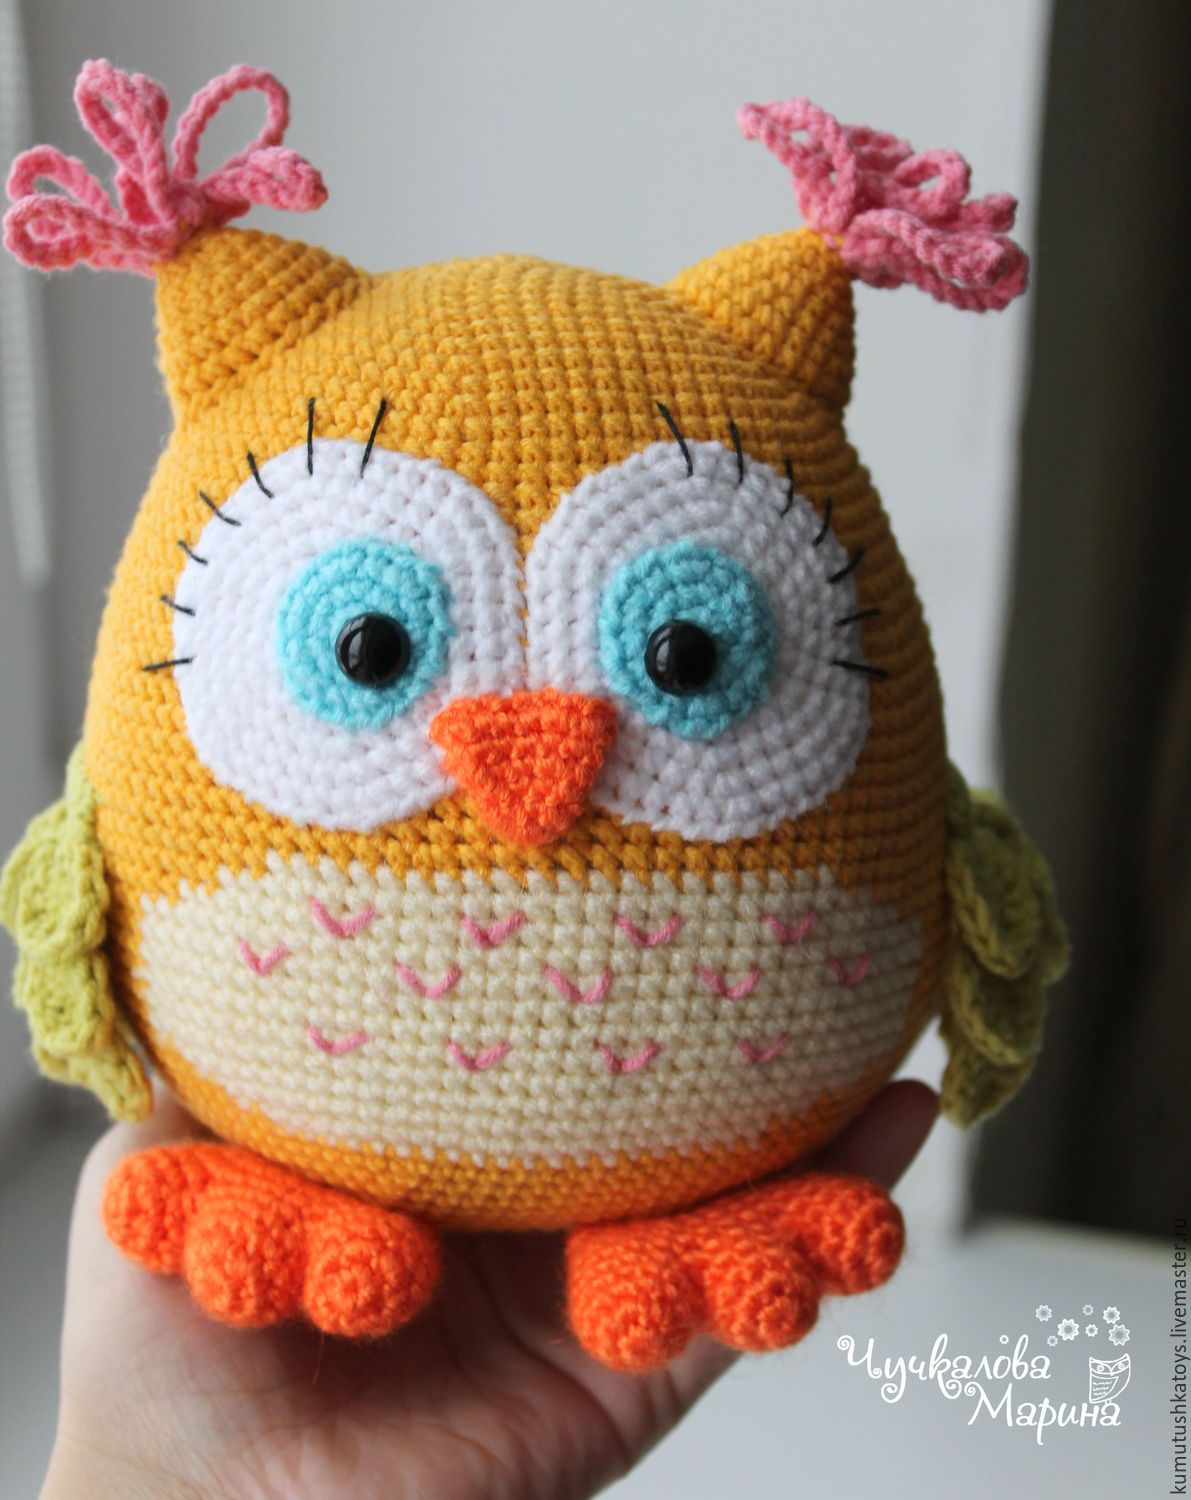 Pin by ЛИЛИЯ ДЯКИВ on Идеи для дома | Pinterest | Owl, Crochet and ...